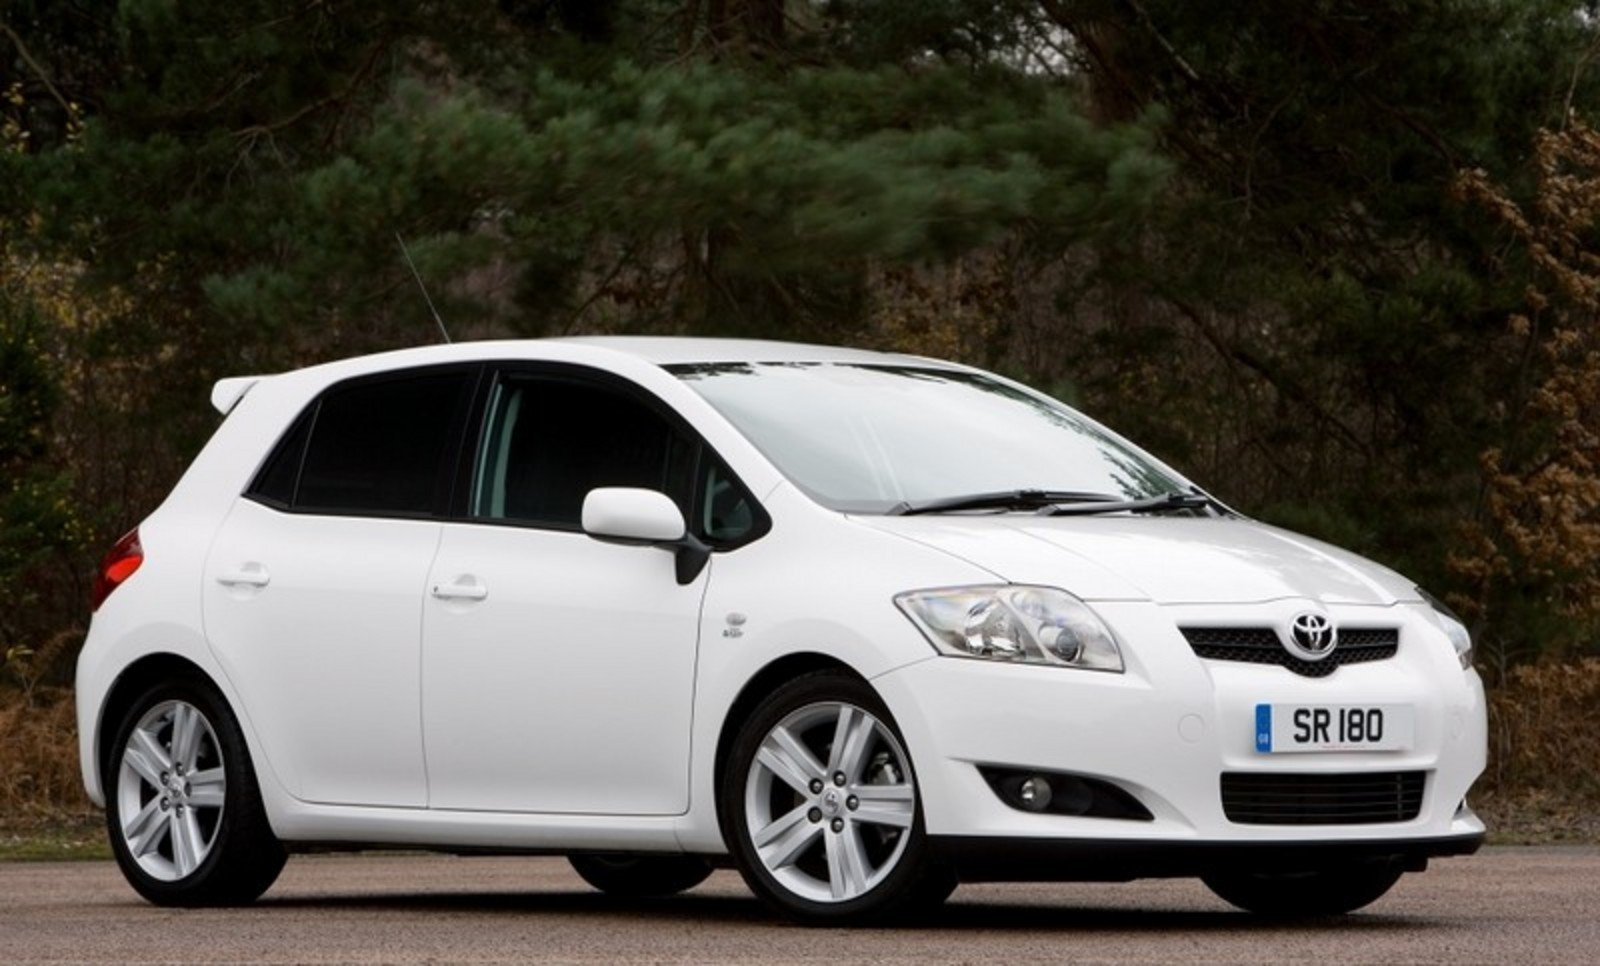 2008 toyota auris sr180 review top speed. Black Bedroom Furniture Sets. Home Design Ideas